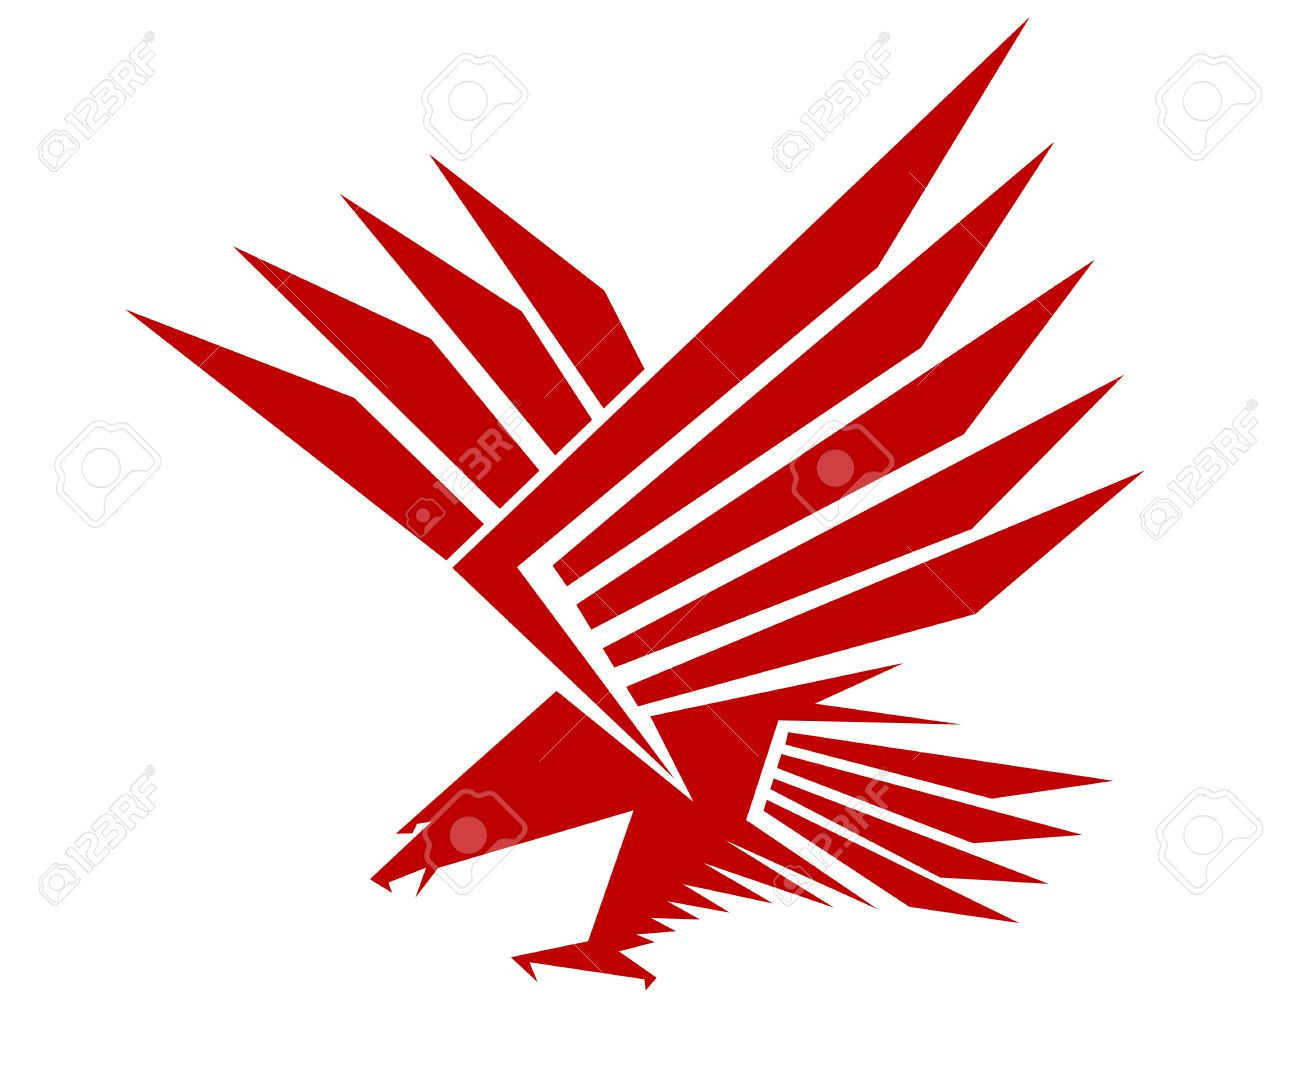 Wildcat clipart eagle claw Claws photo#21 clipart Clipart Eagle